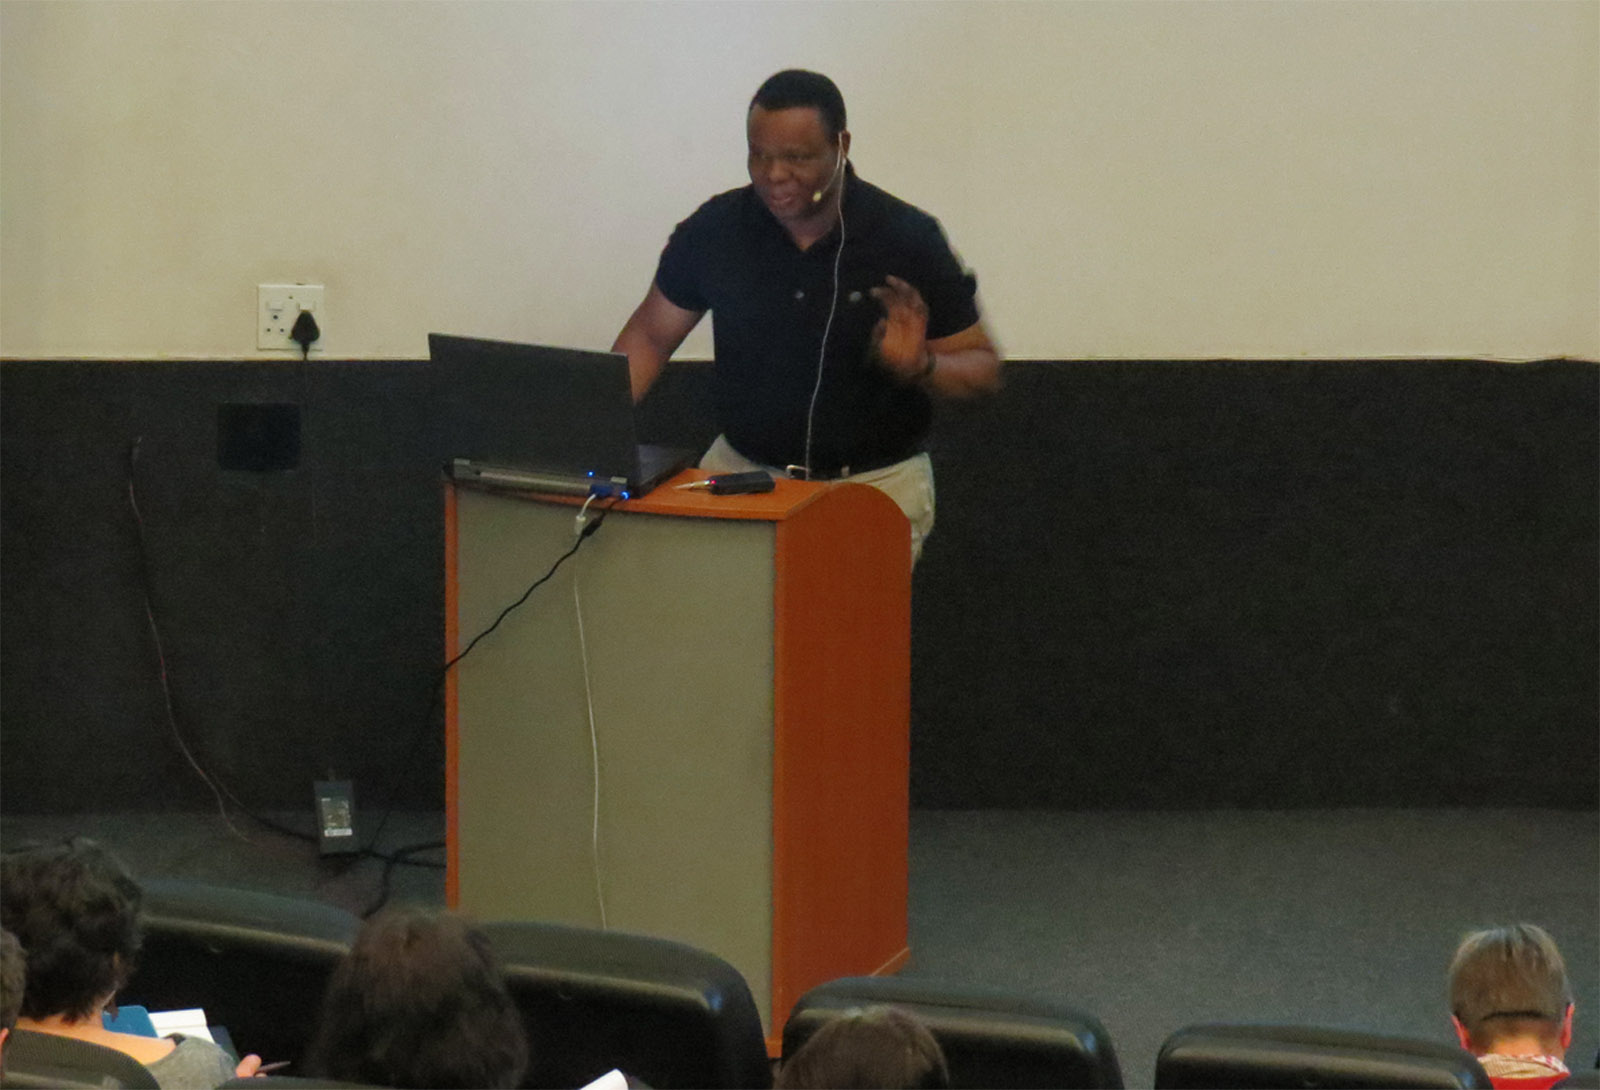 Click the image for a view of: Dr. Sikhumbuzo Mngadi speaking at the roundtable: South African book arts as a democratic force. Sunday 26 March